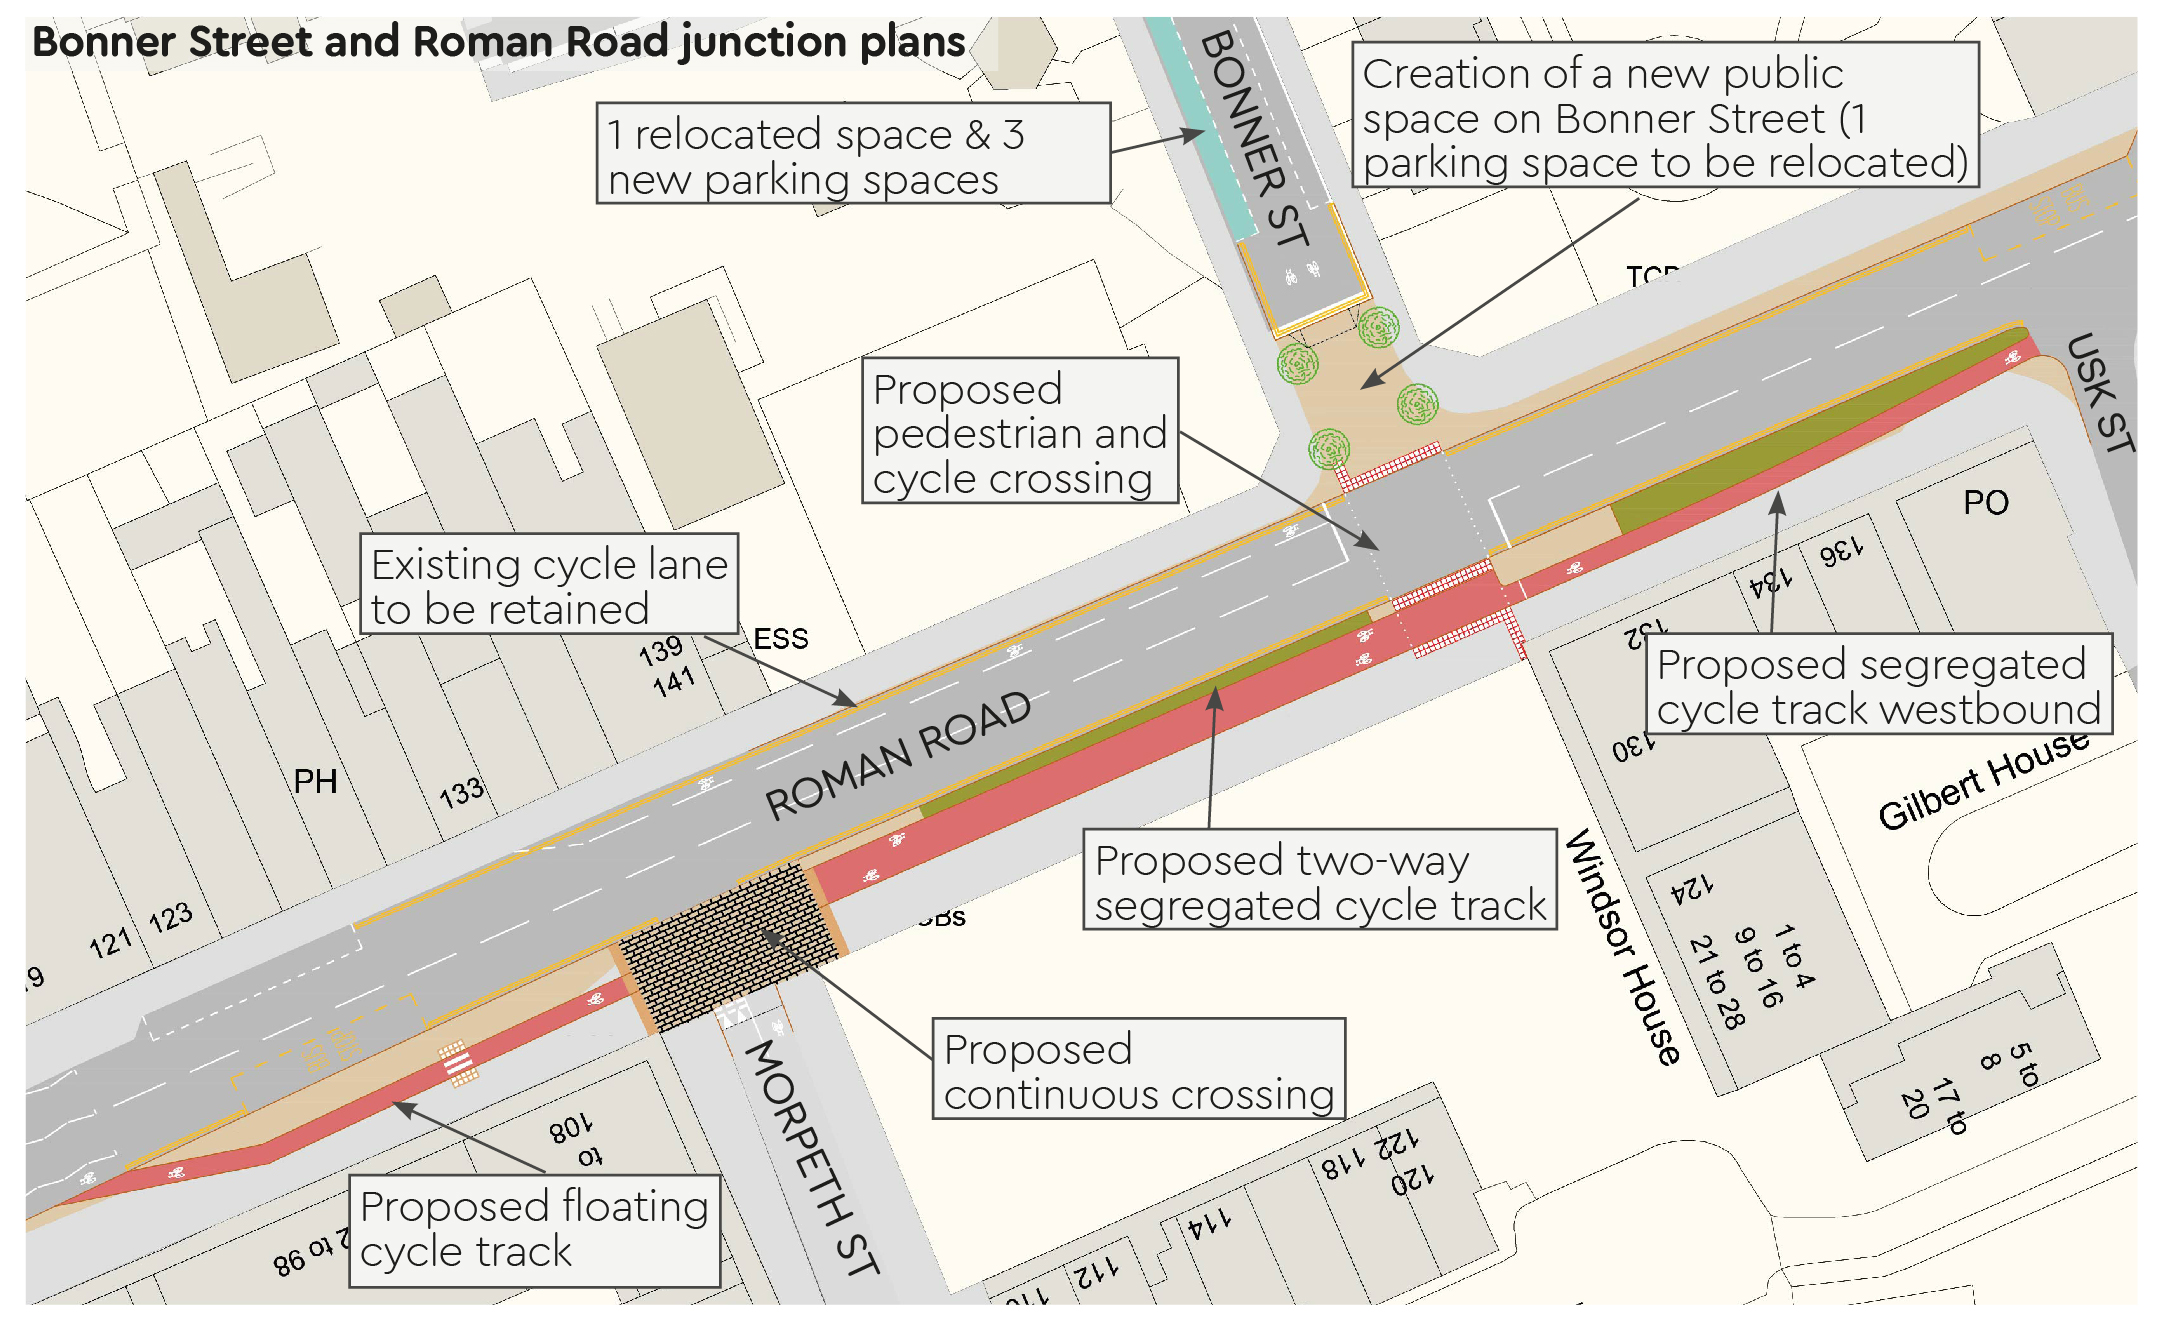 Bonner Street and Roman Road Junction Plans: Proposed two-way segregated cycle track between Bonner Street and Morpeth Street, and proposed segregated westbound cycle track from Bonner Street and floating cycle track from Morpeth Street on Roman Road, proposed pedestrian and cycle crossing at Bonner Street and Roman Road junction, and closure of Bonner Street entrance with creation of new public space on Bonner Street with relocated 1 parking bay and 3 new parking bays on Bonner Street.